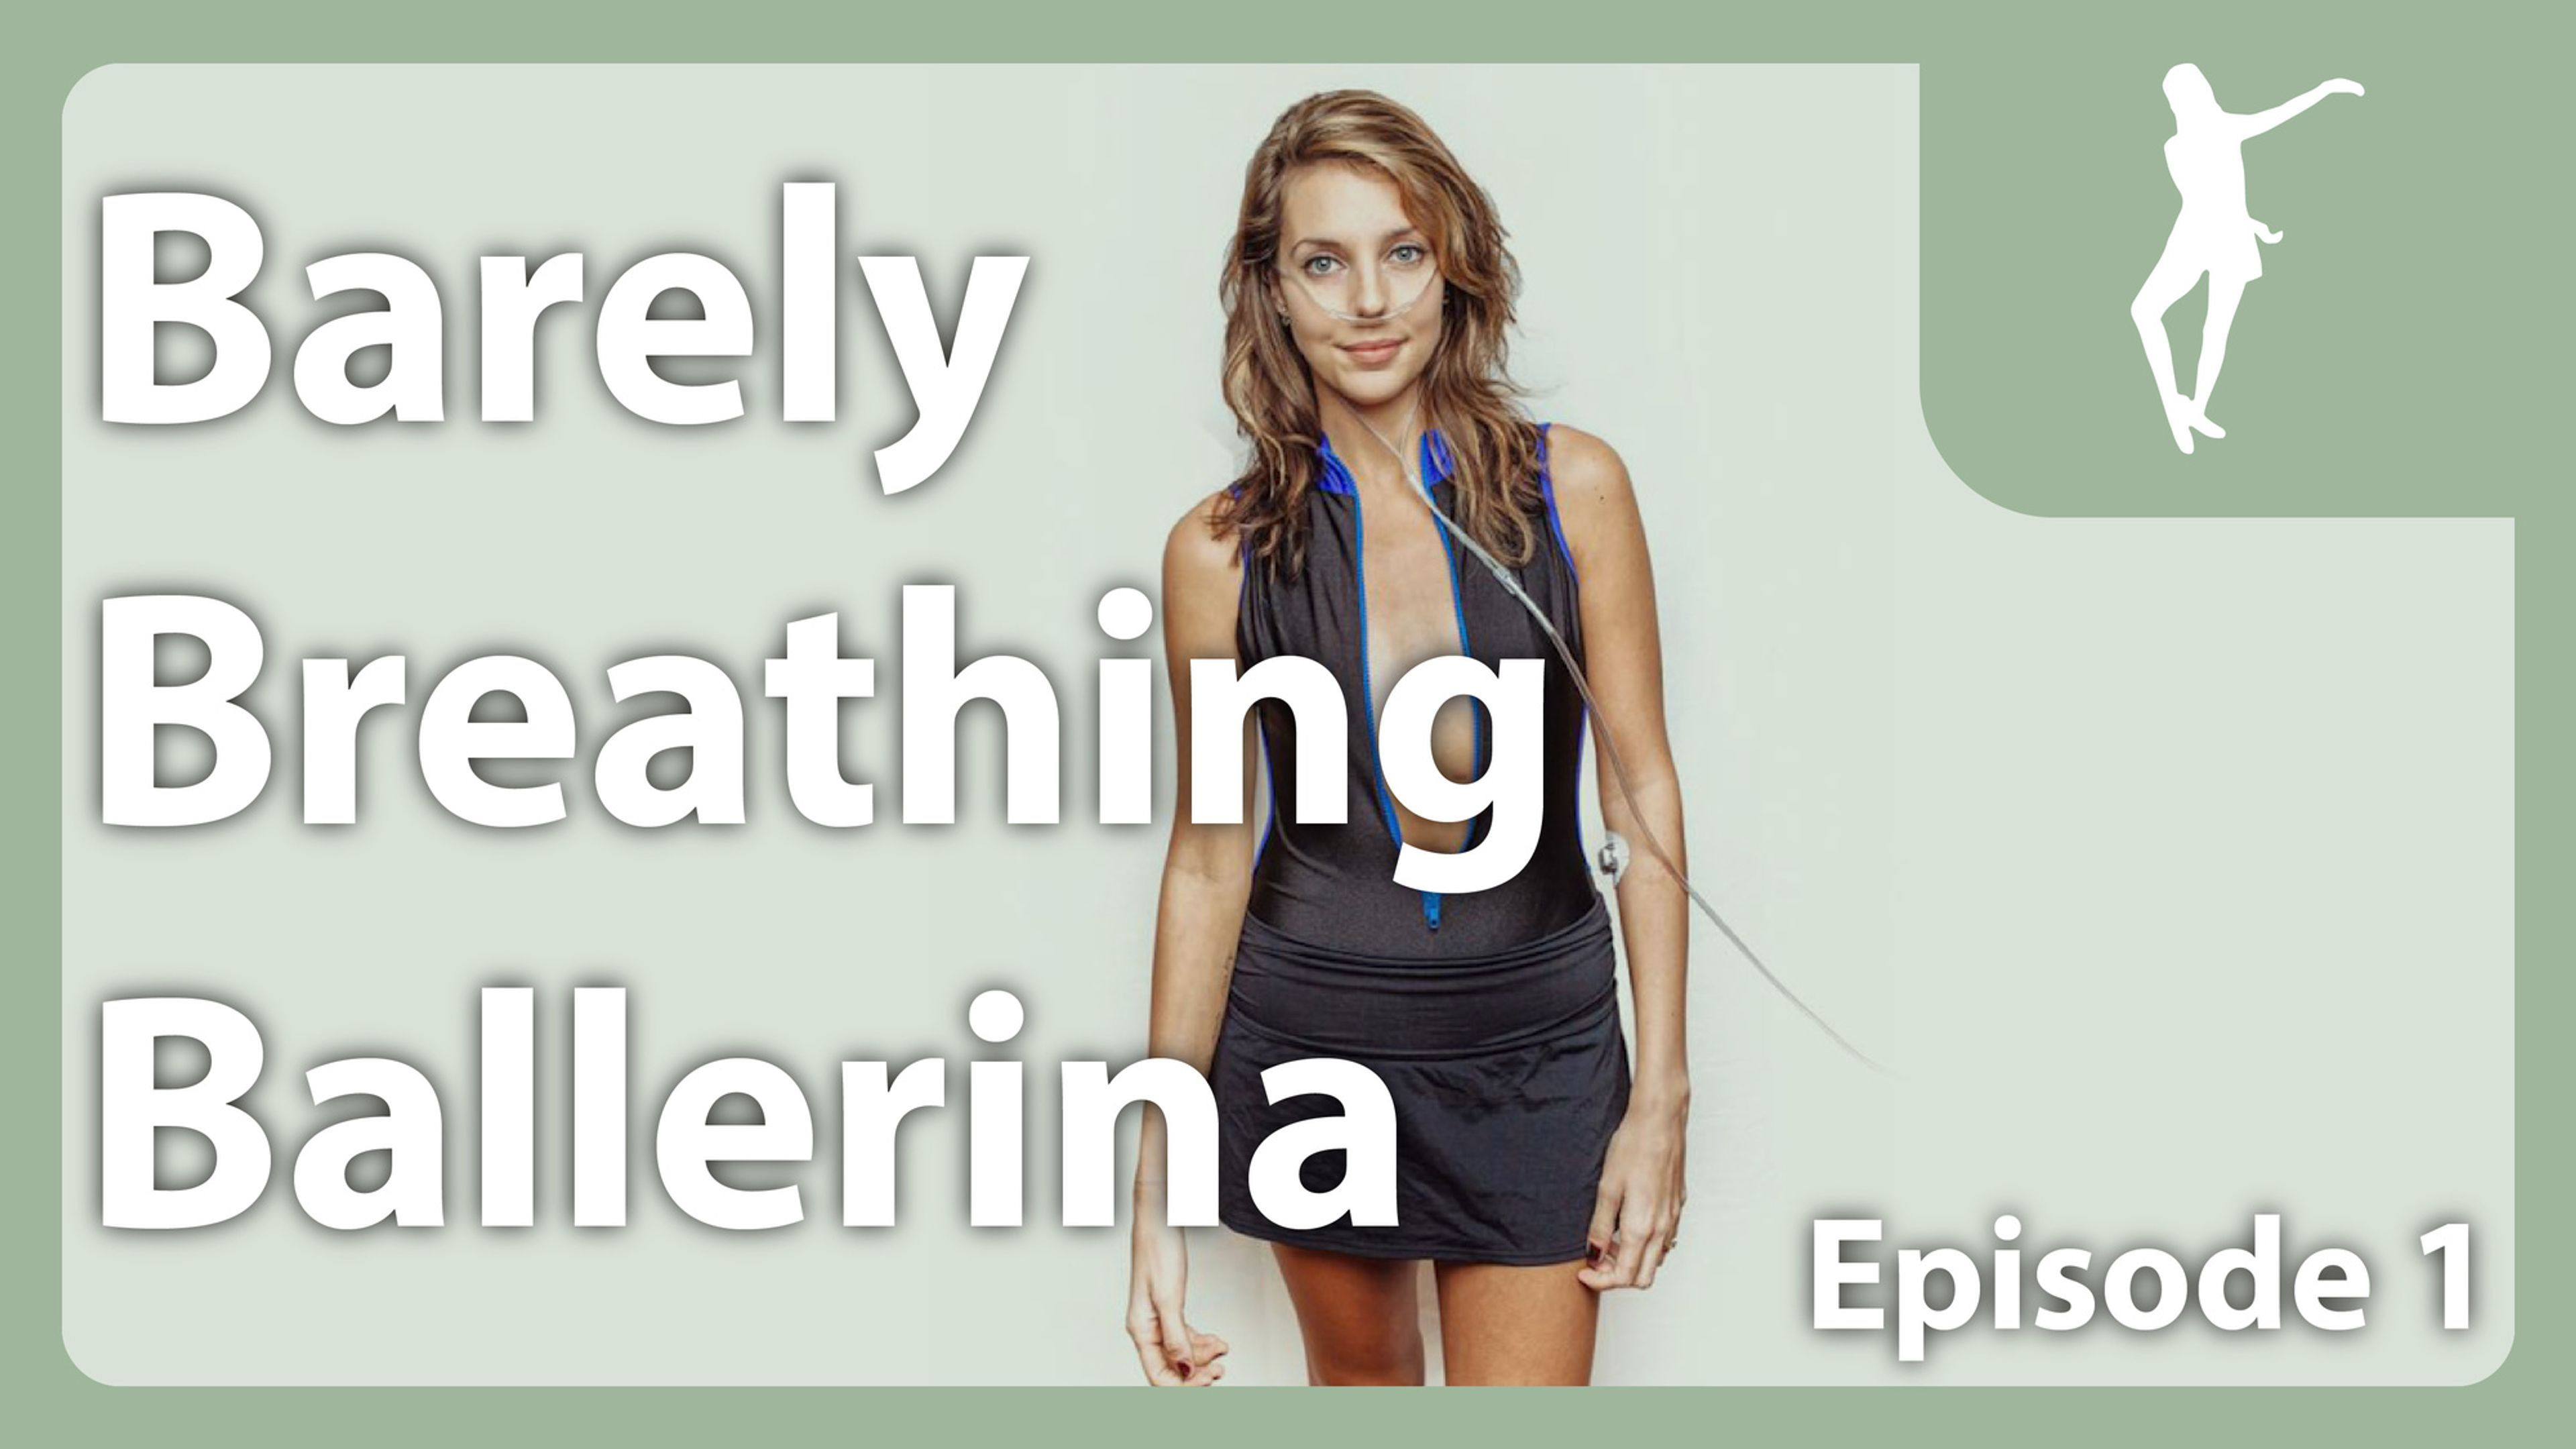 SERIES: Barely Breathing Ballerina – Bailey Vincent is dancing through life while fighting for her life.